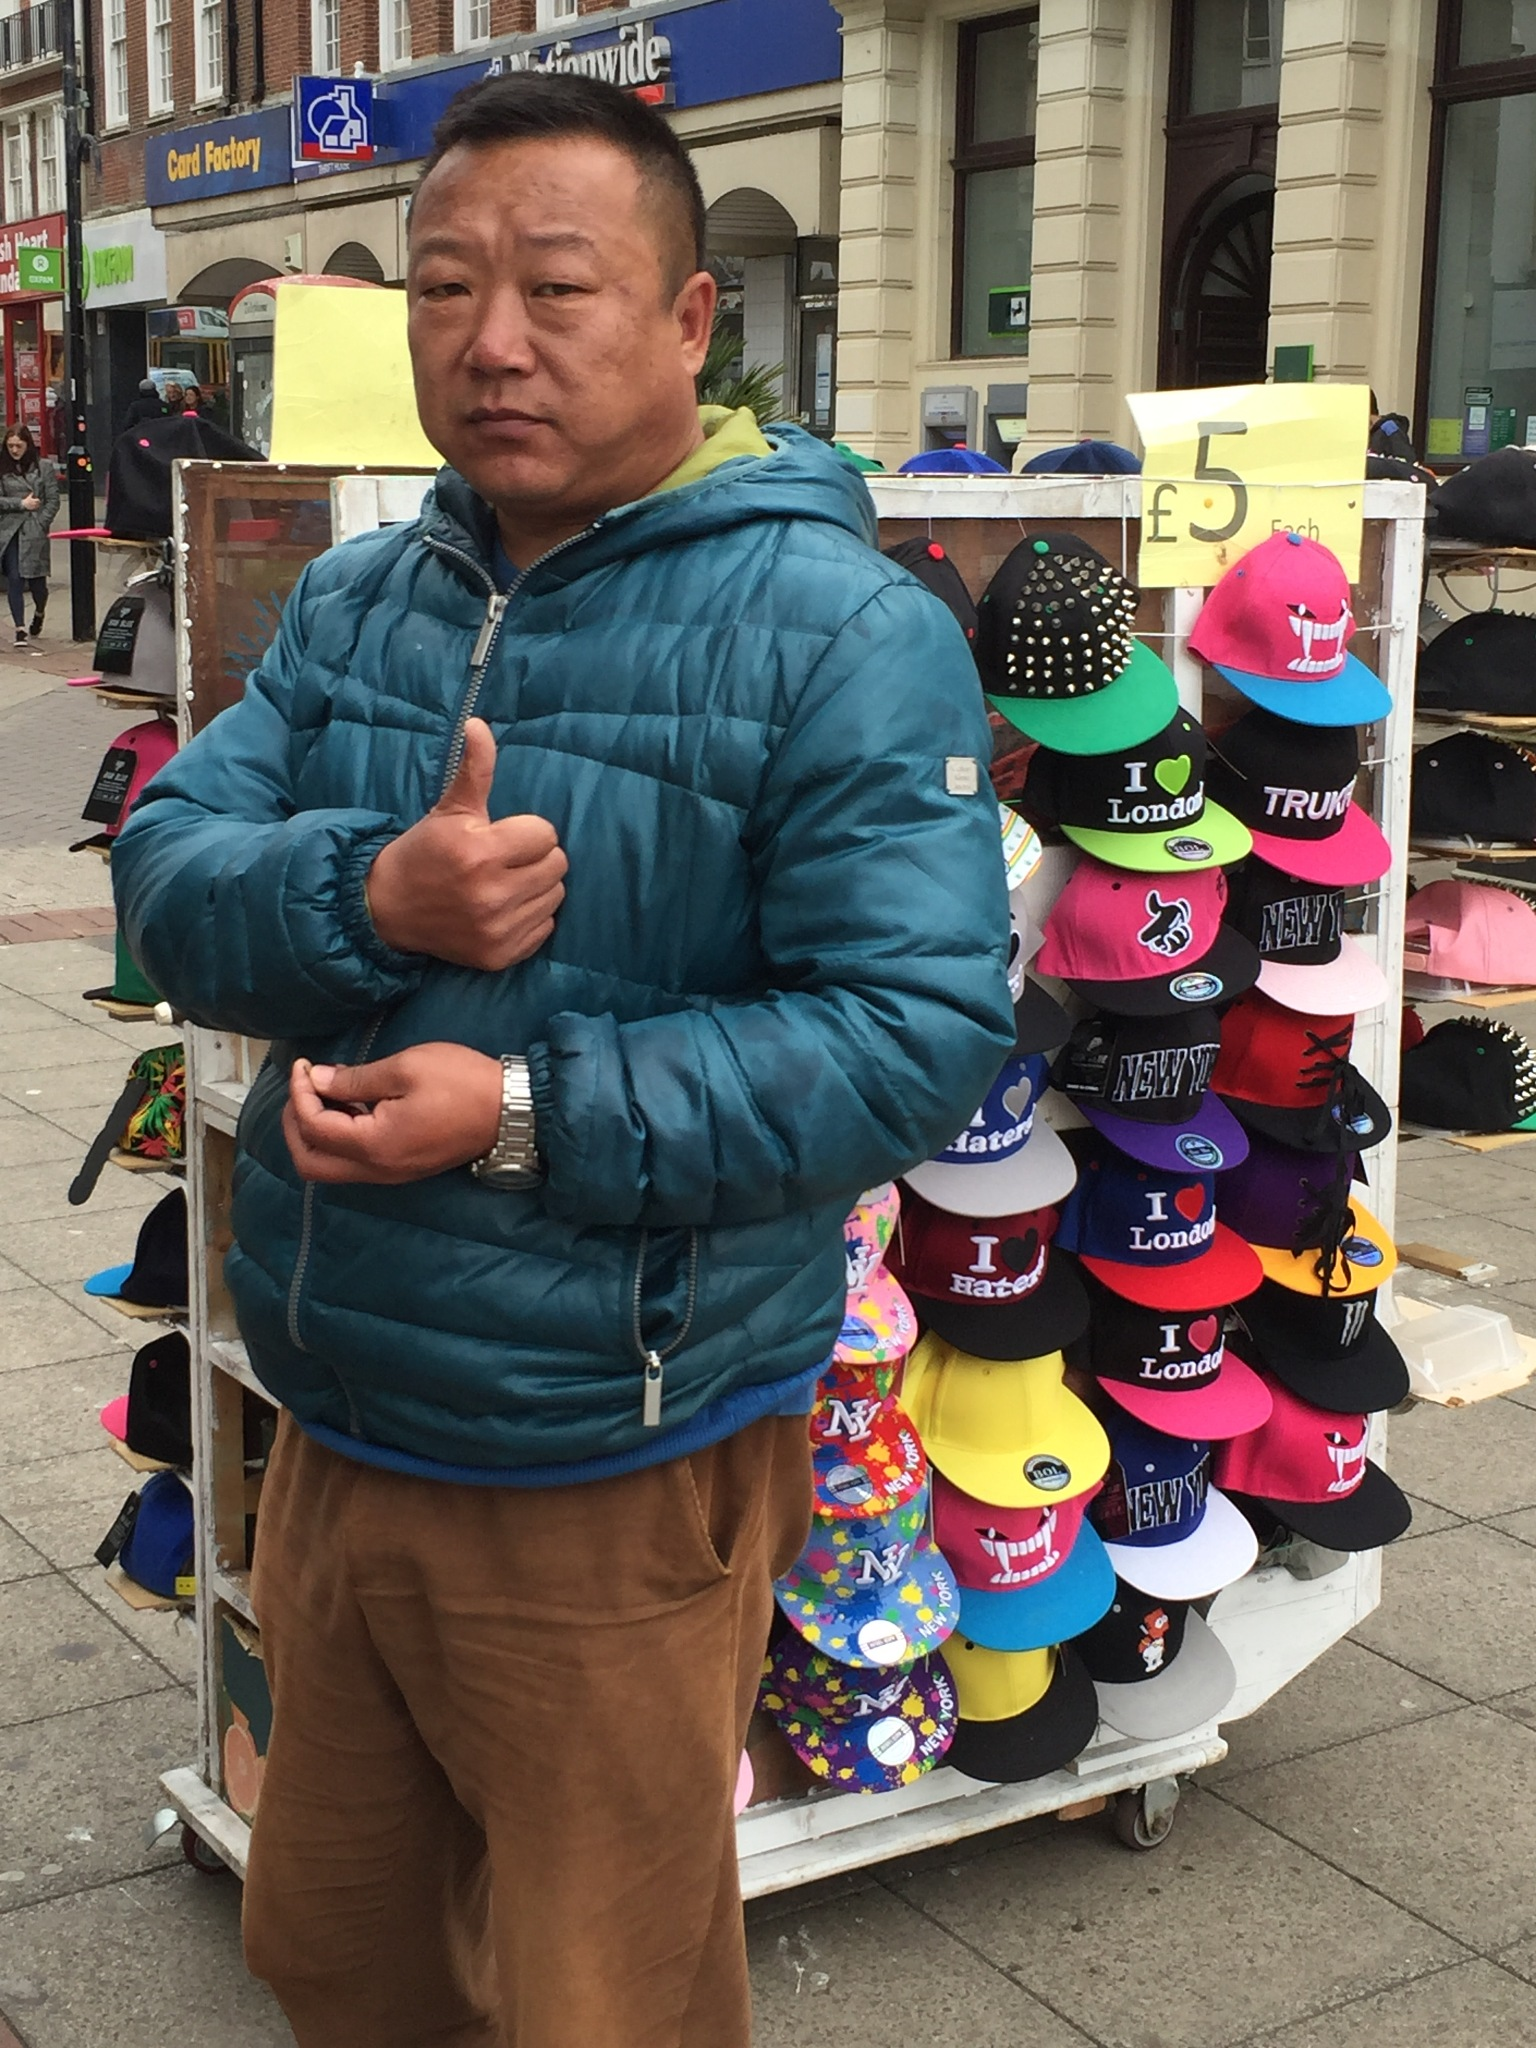 Chinese man selling hats  by KurdSpring